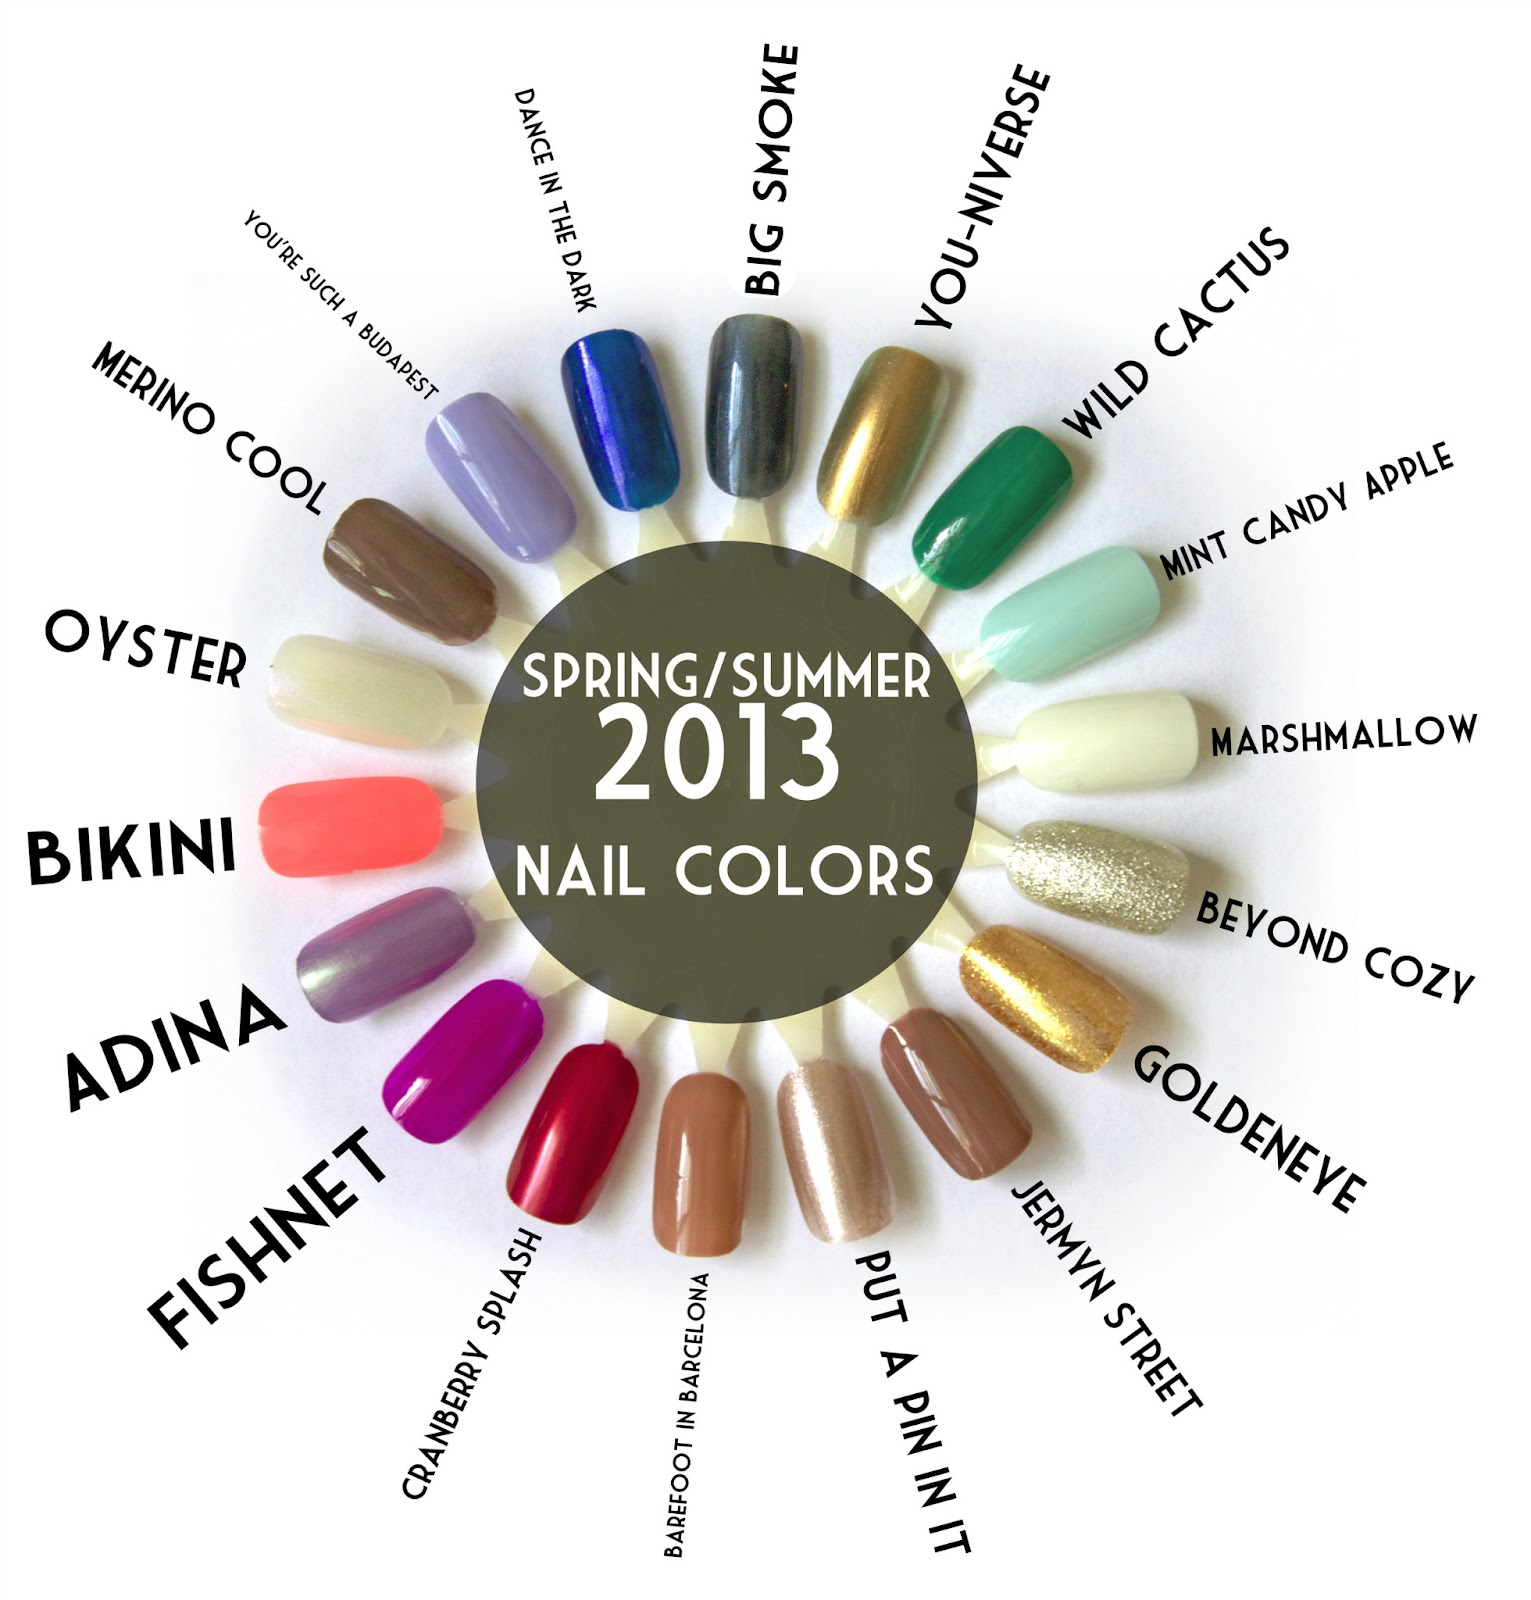 medium resolution of spring summer 2013 nail inspiration with swatches and nail art